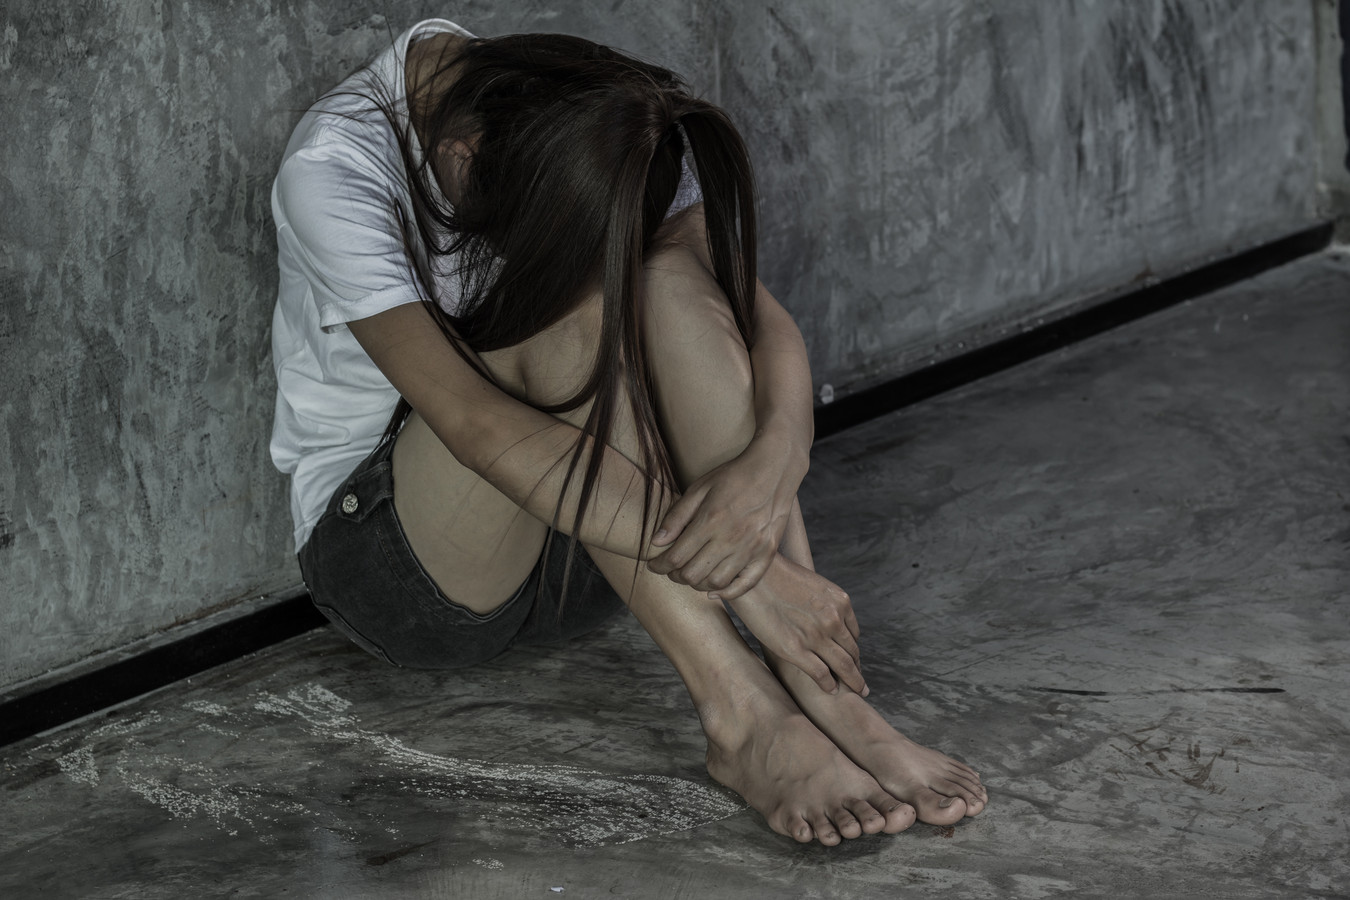 Stockfoto mensenhandel. A girl with sadness sits hugging, stopping violence against women, International Women's Day